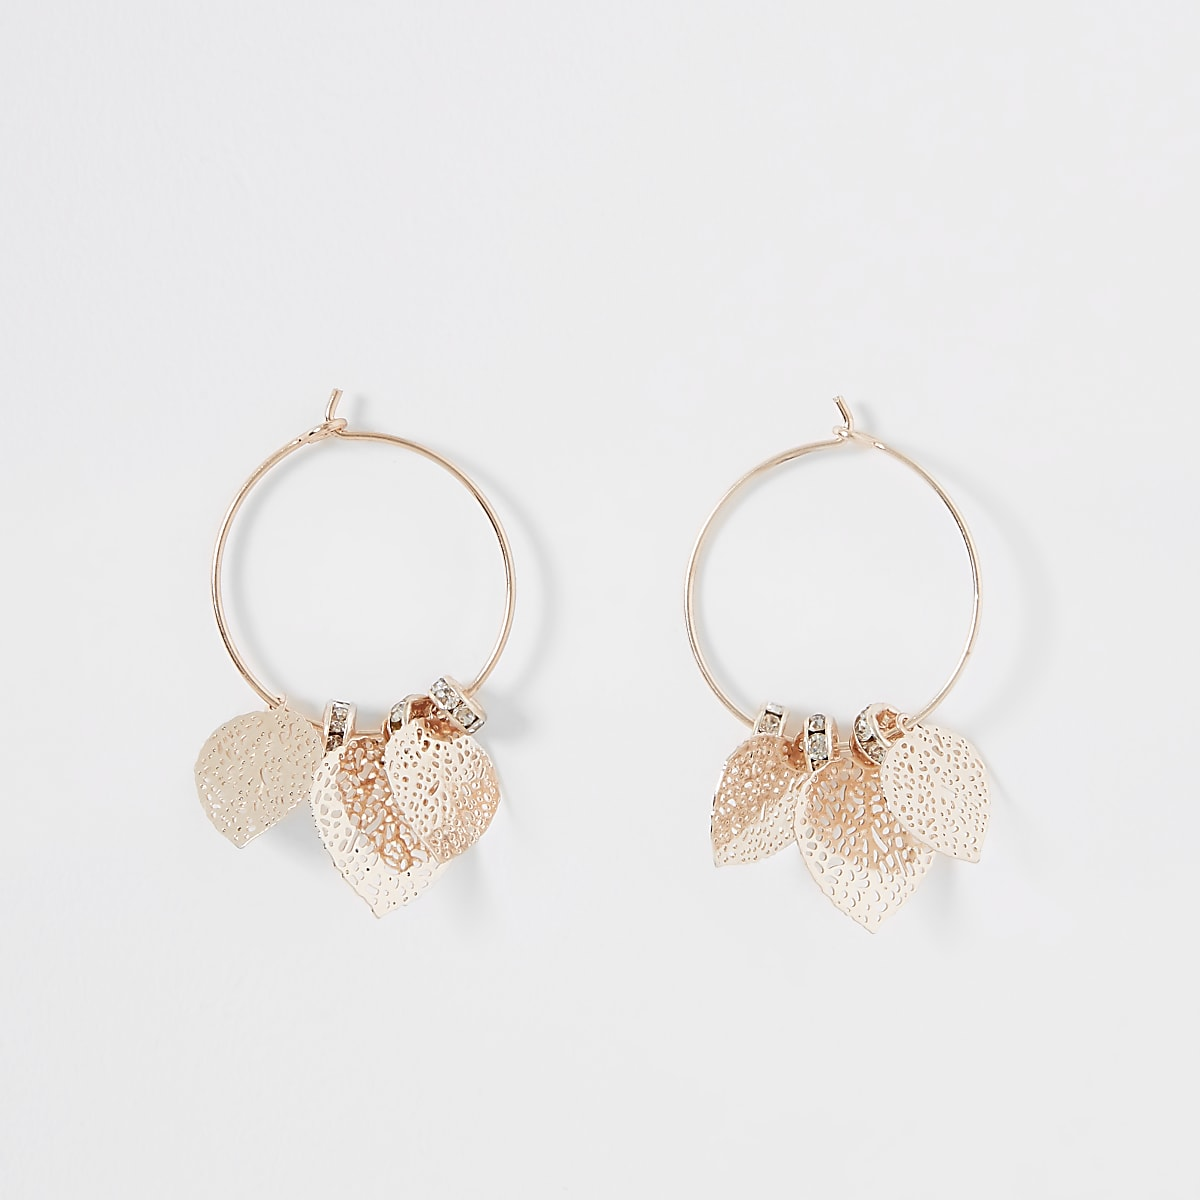 Orange flower hoop earrings